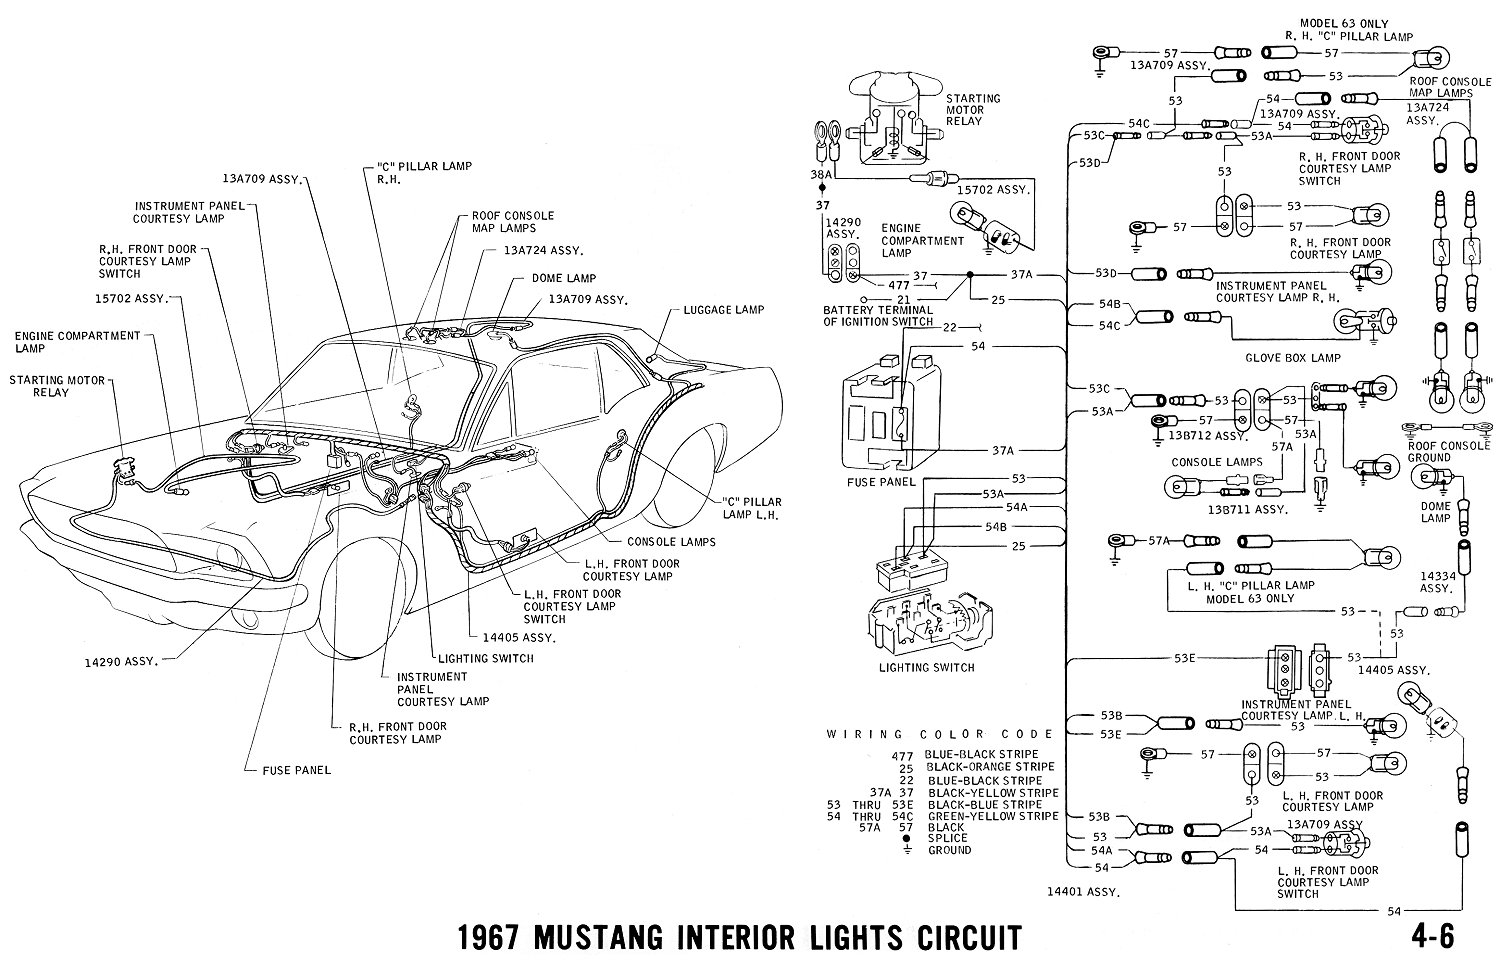 1967 mustang turn signal wiring diagram